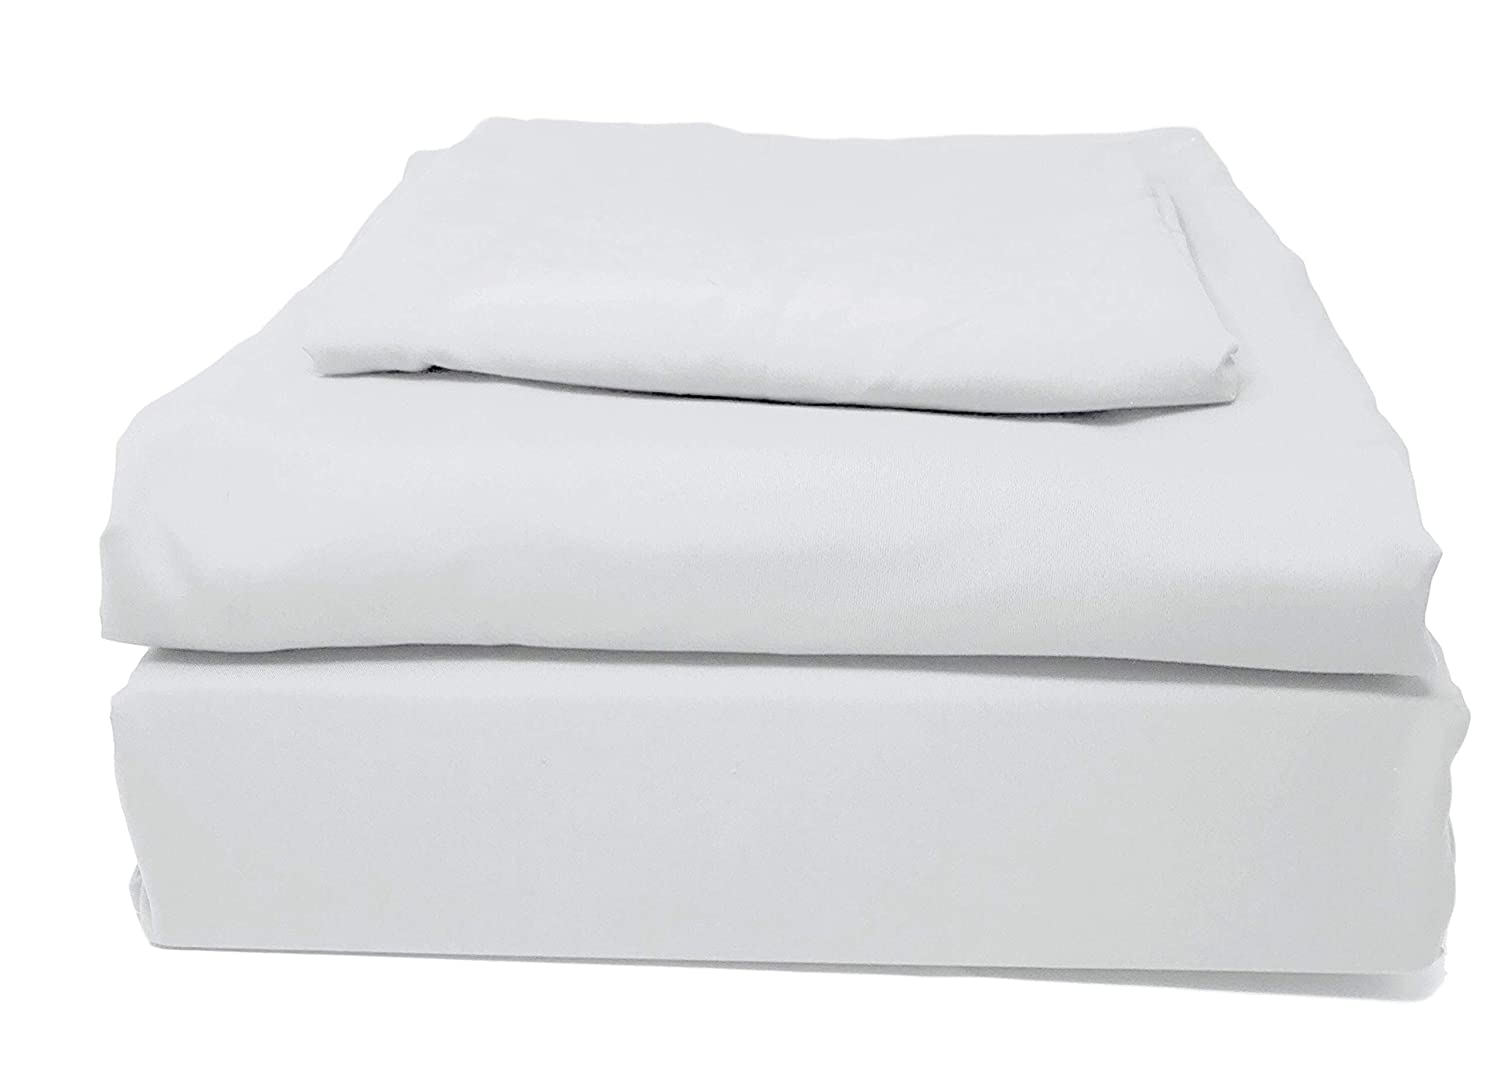 White 4 Packages Twin XL Tache Home Fashion 505-CW-BSS-TwinXL 4 Piece Super Soft Bulk Wholesale Motel Hotel Hospitality Dorm Guest Bed Bedroom Basic Bed Sheet Set